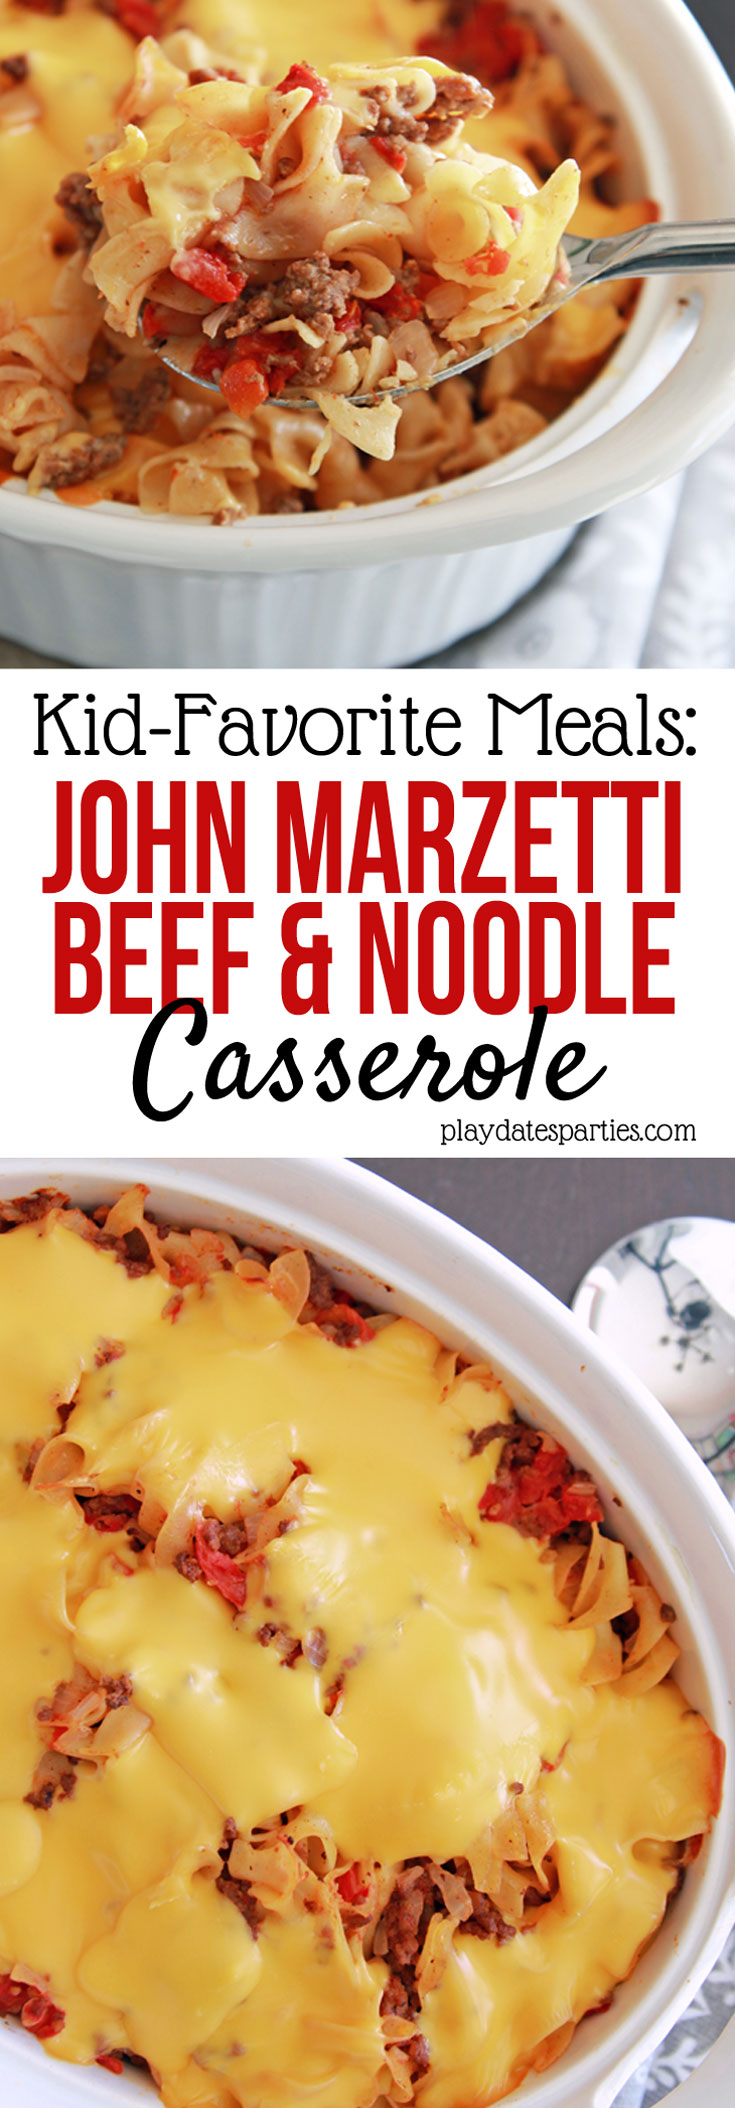 John Marzetti Noodle Casserole is an easy comfort food #recipe that everyone in the #family loves. Filled with ground beef and noodles, and smothered with a cheesy sauce, this is the ultimate in comfort food!